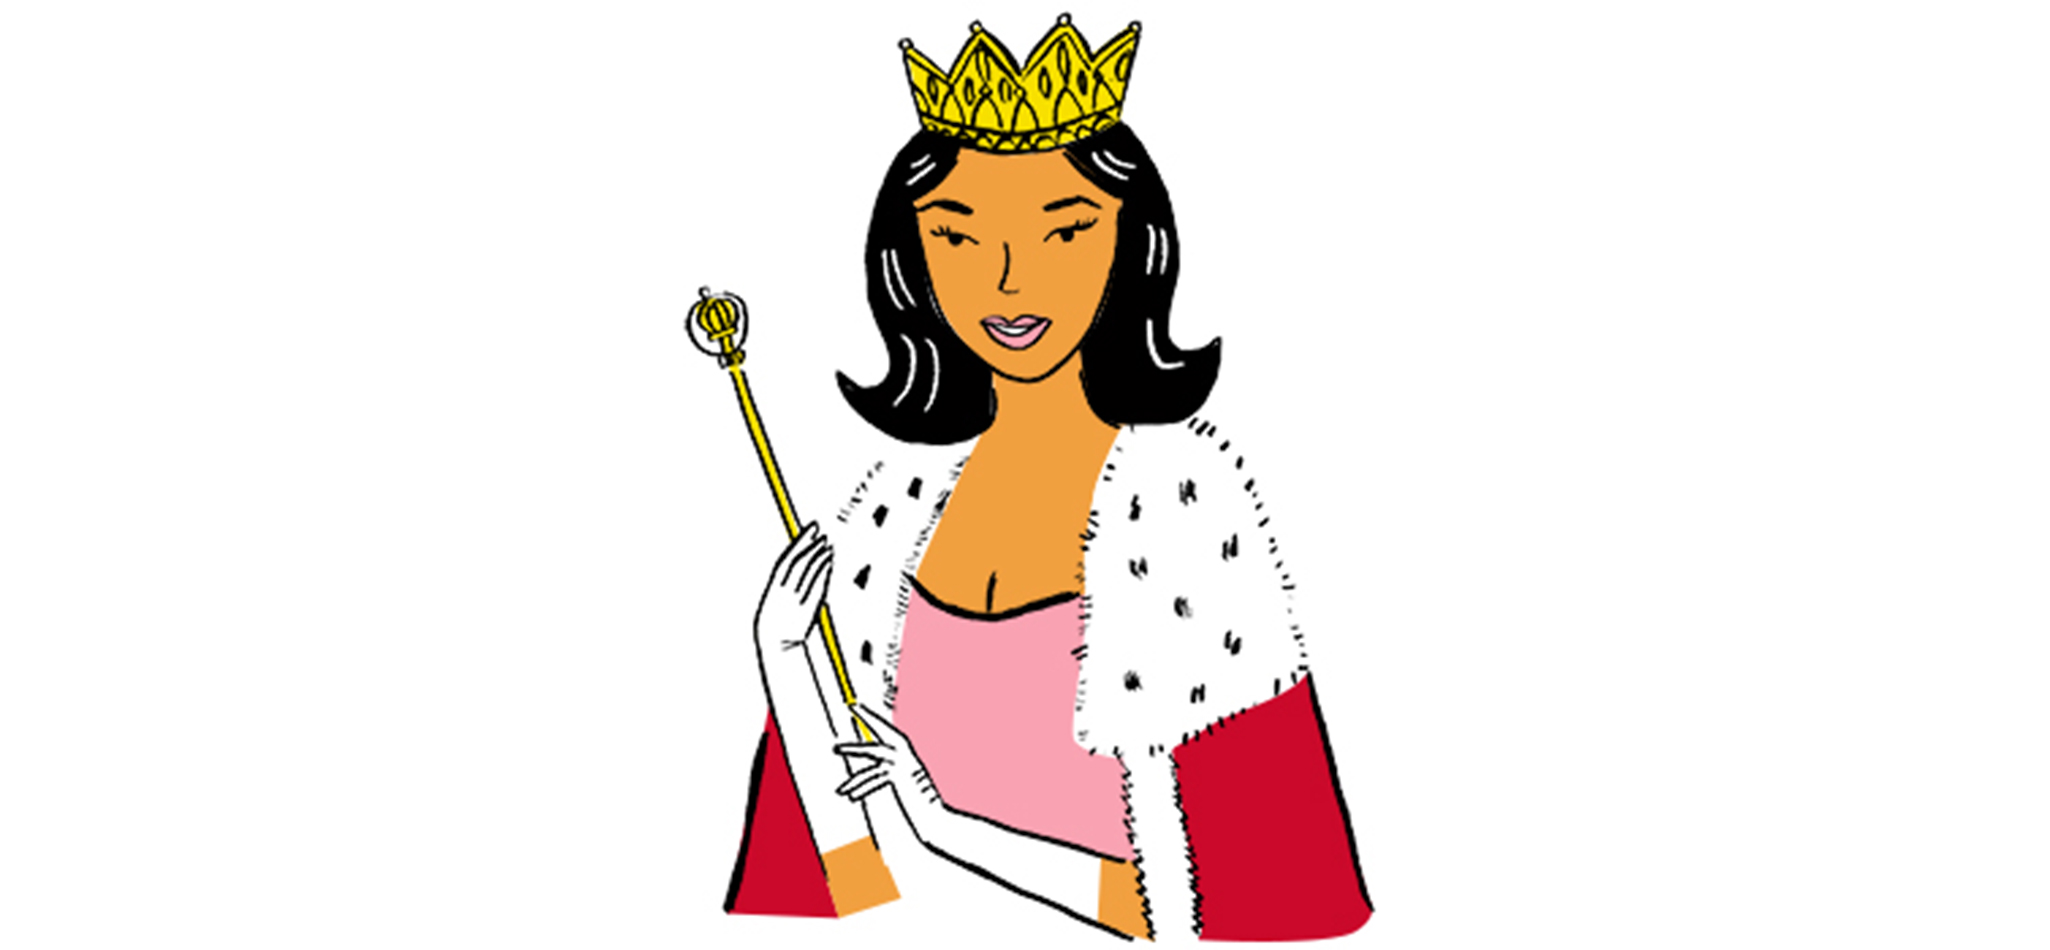 Youth beauty queen being crowned clipart clip art transparent download Why The Philippines Dominates World Beauty Pageants clip art transparent download